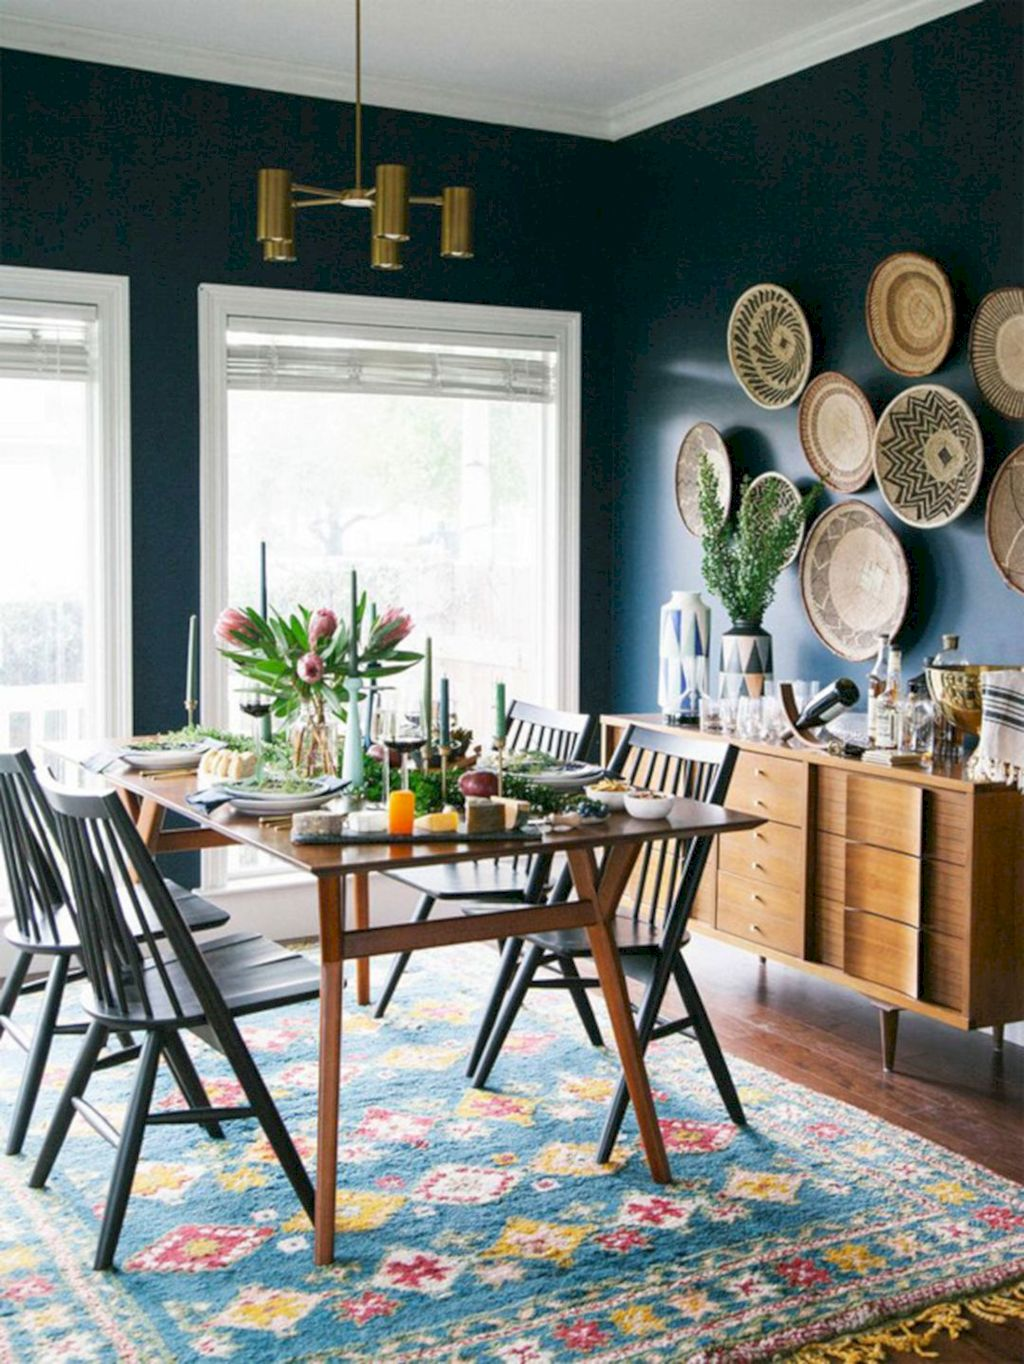 Beach home dining room style giving a fresh vibe among inviting recreational interior update Image 17